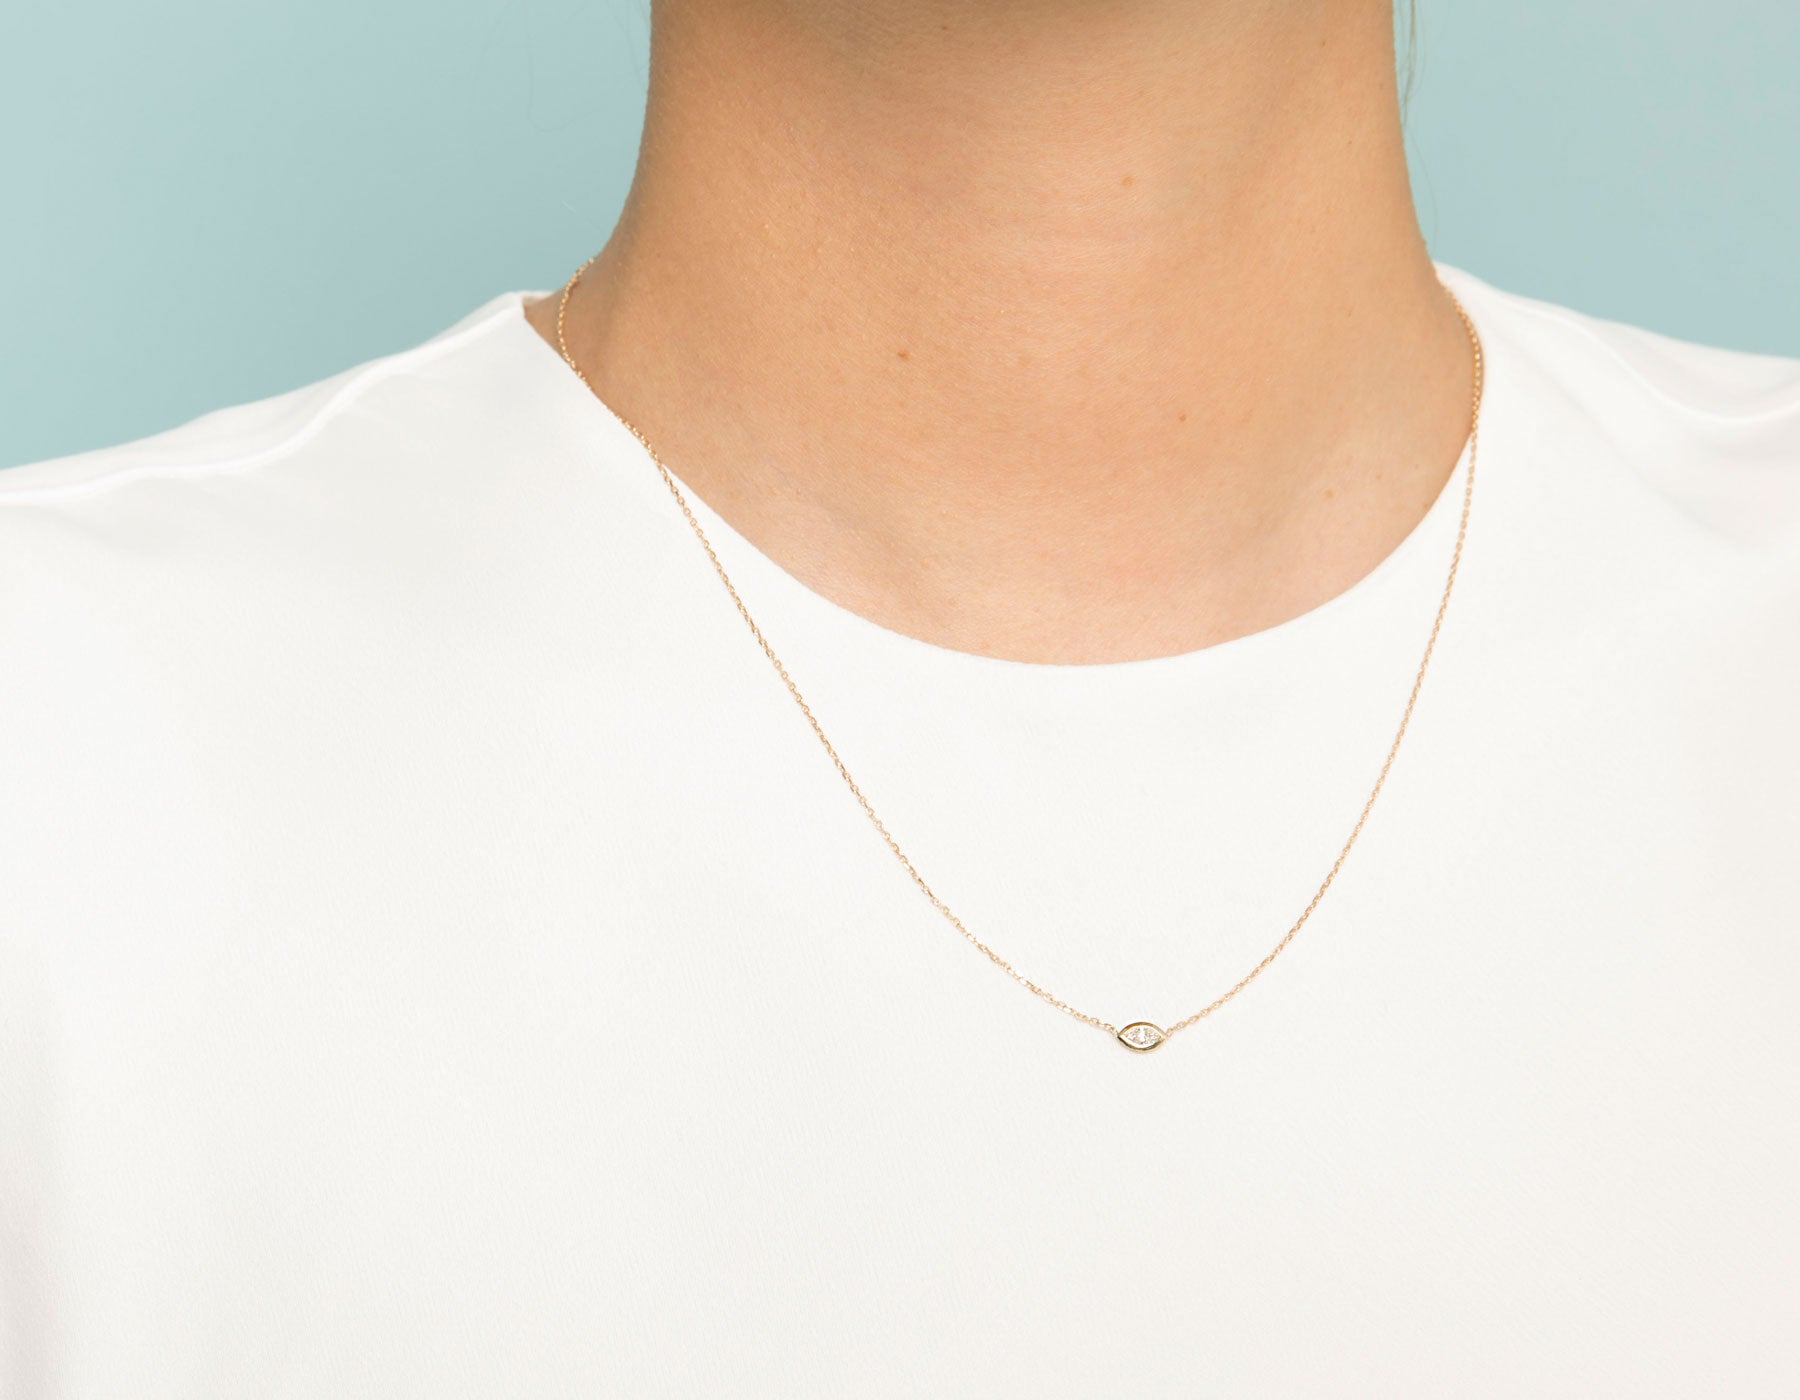 Model wearing dainty minimalist Marquise Diamond Bezel Necklace by Vrai, 14K Yellow Gold